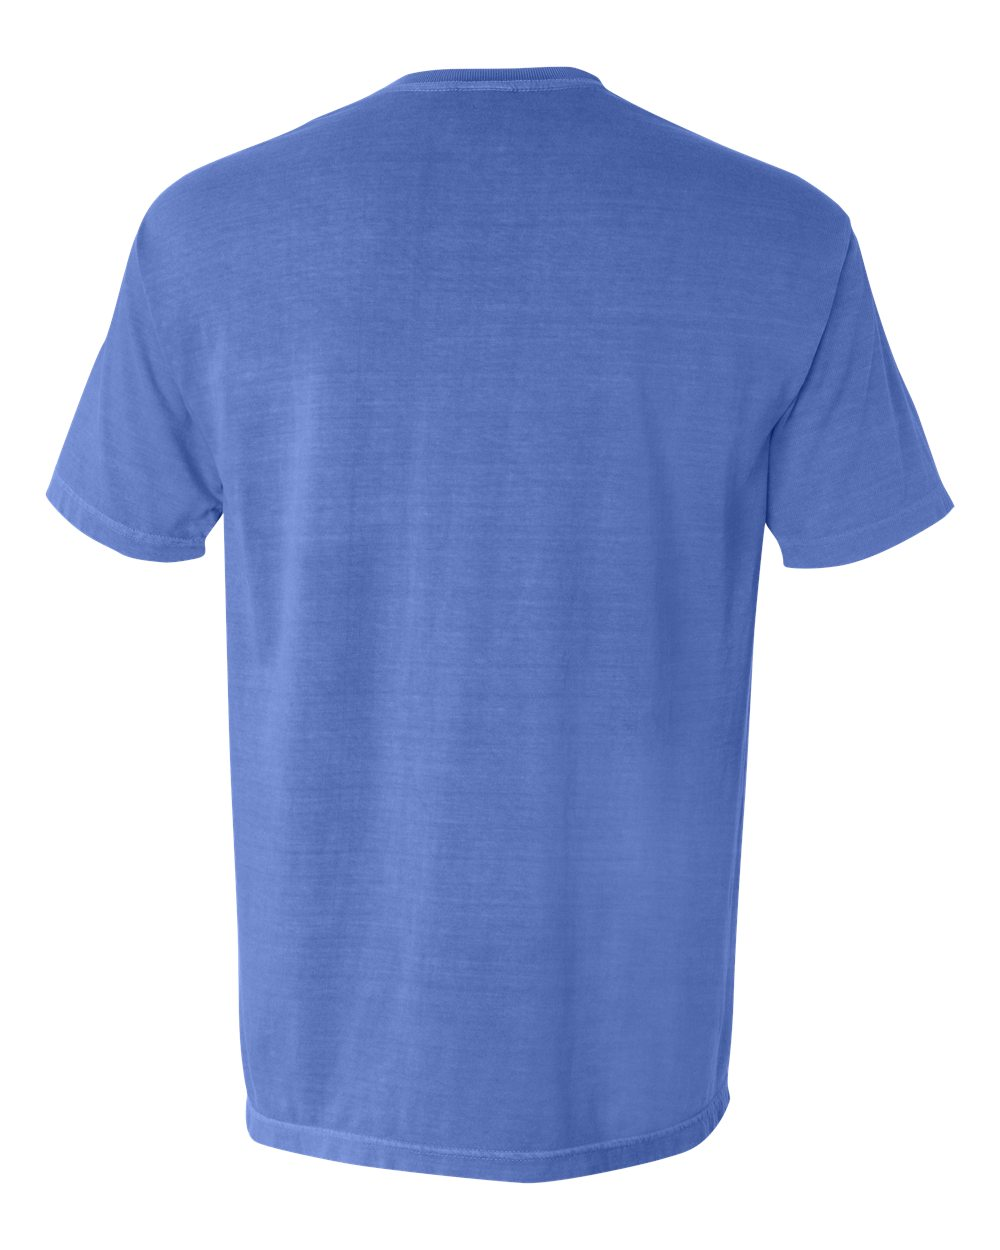 Comfort-Colors-Men-039-s-6-1-oz-Garment-Dyed-Pocket-T-Shirt-6030CC-S-3XL thumbnail 40